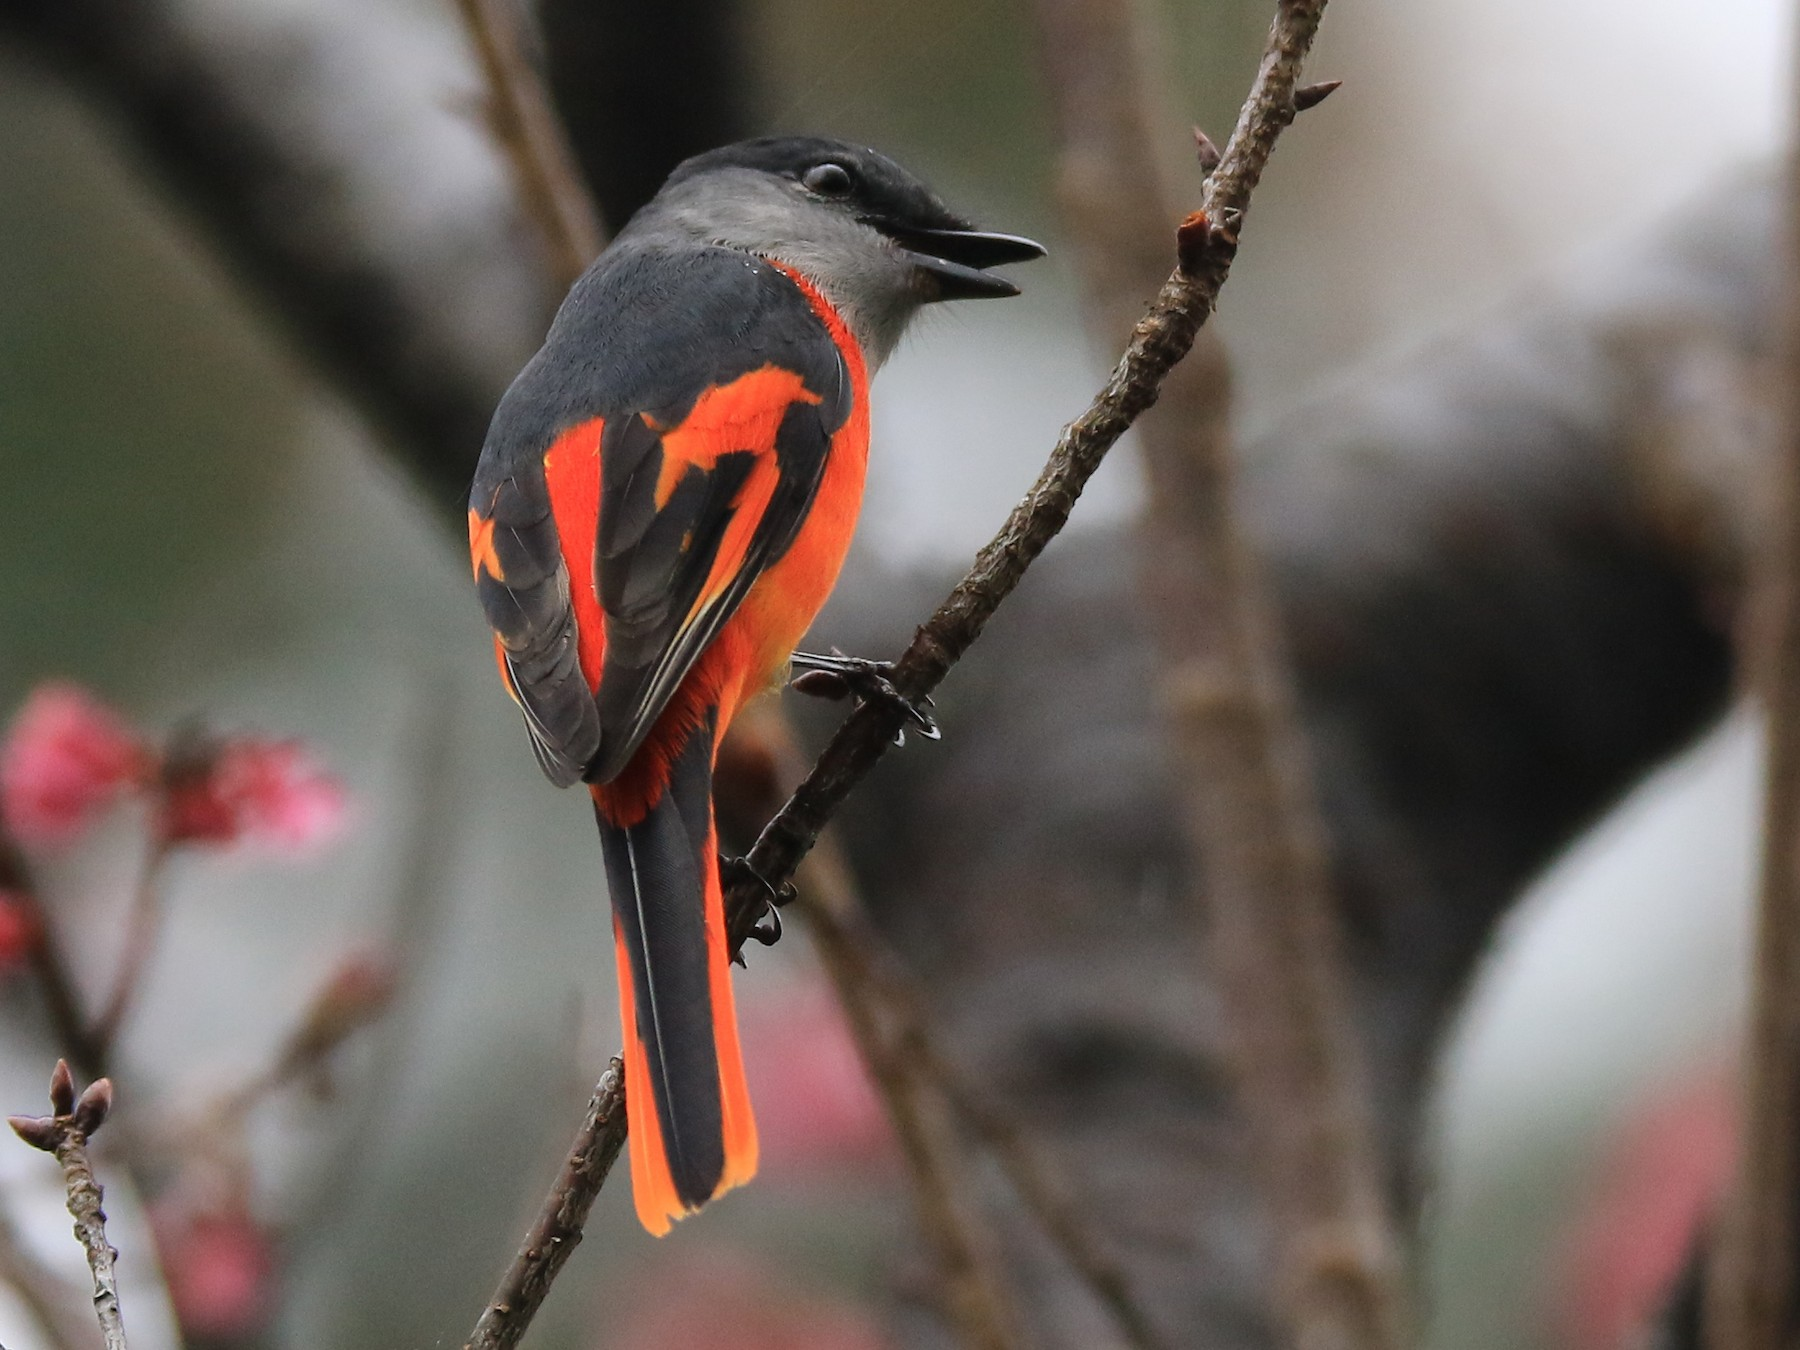 Gray-chinned Minivet - Allen Lyu